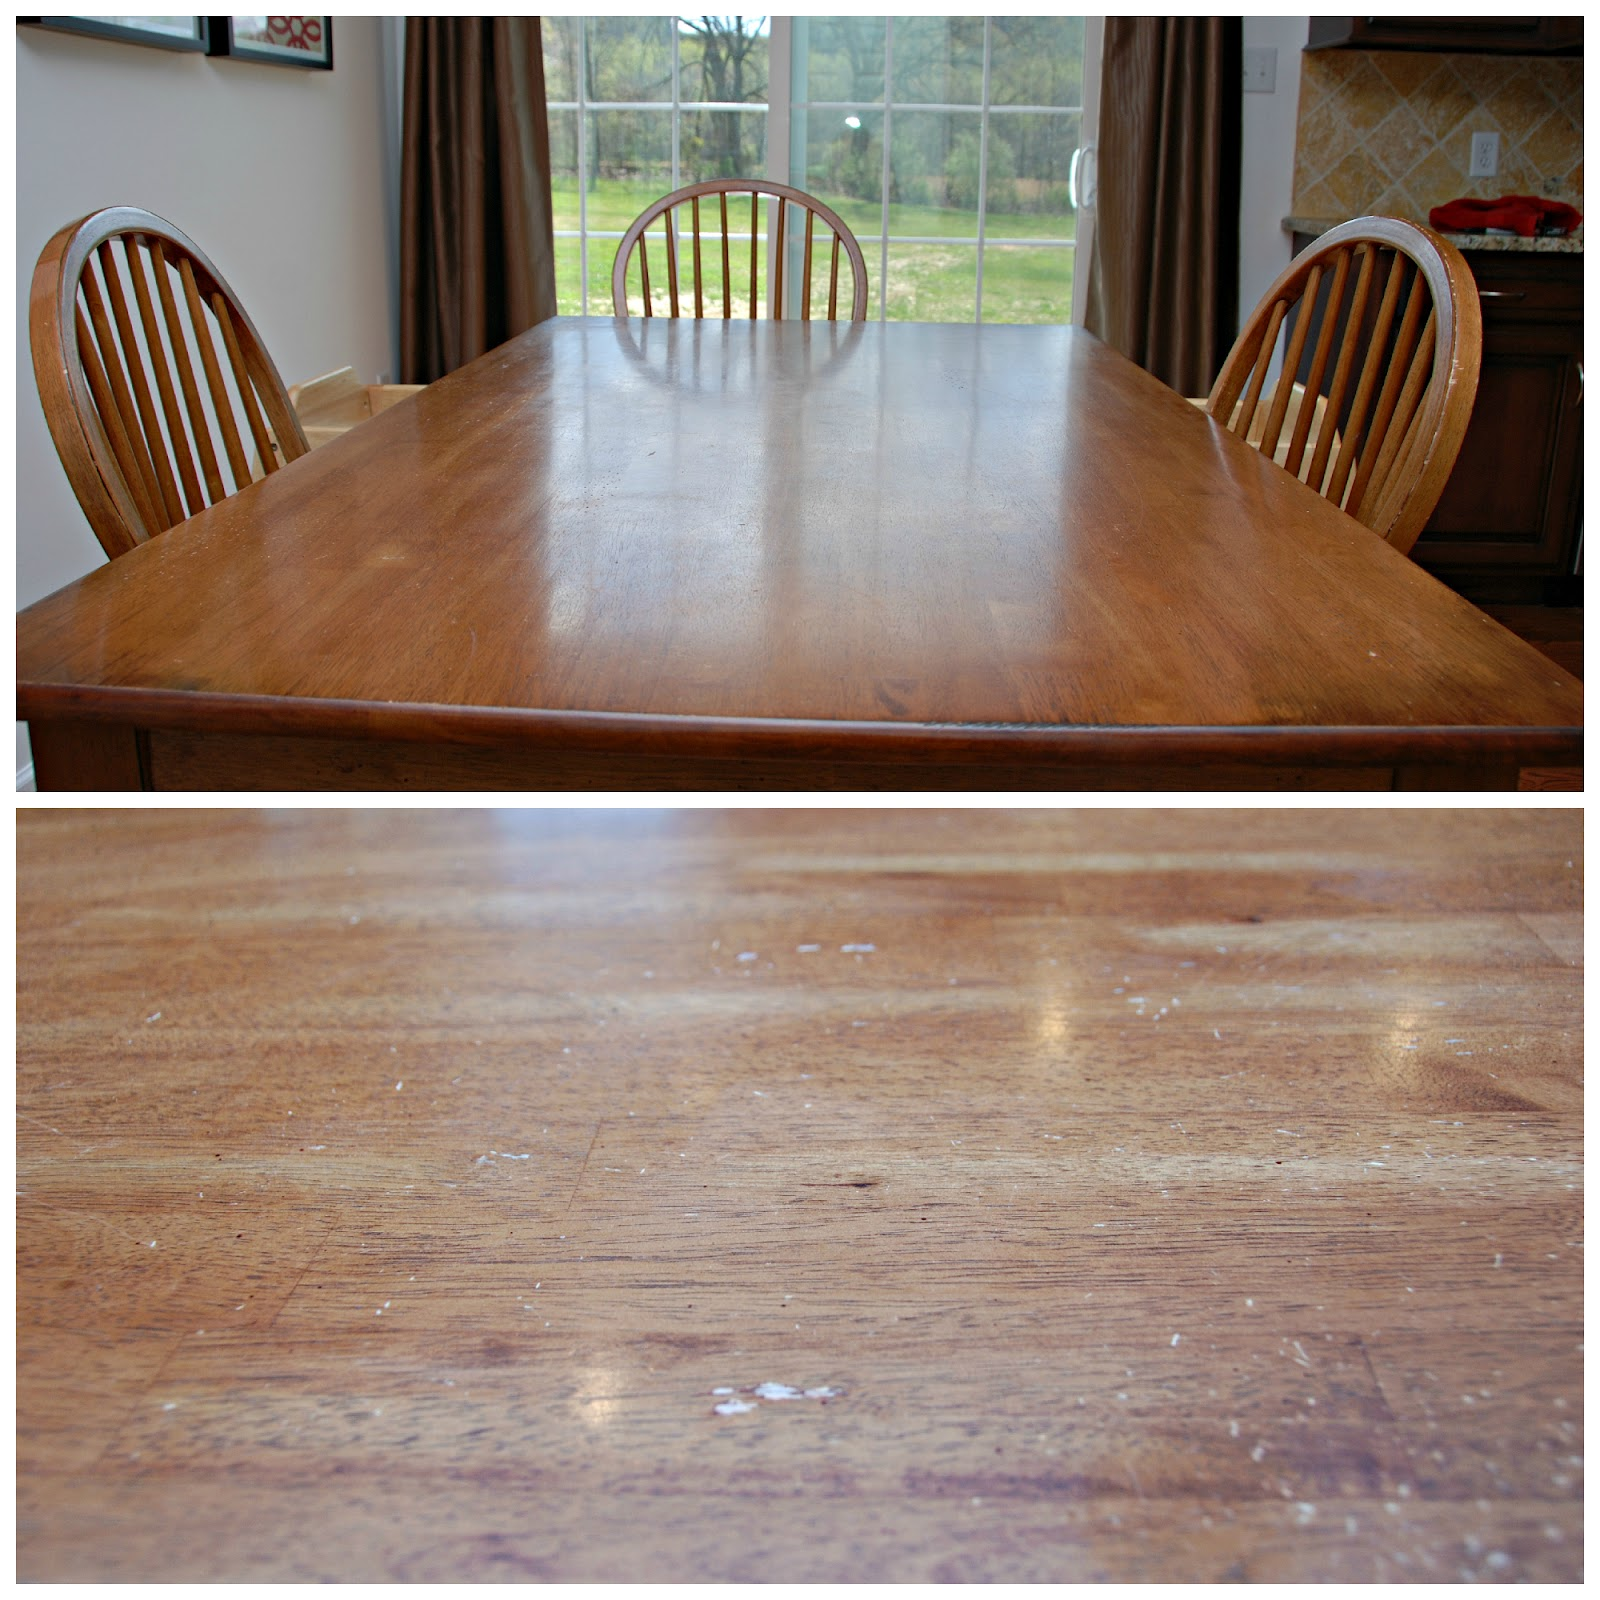 refinished kitchen table refinish kitchen table Refinished Kitchen Table